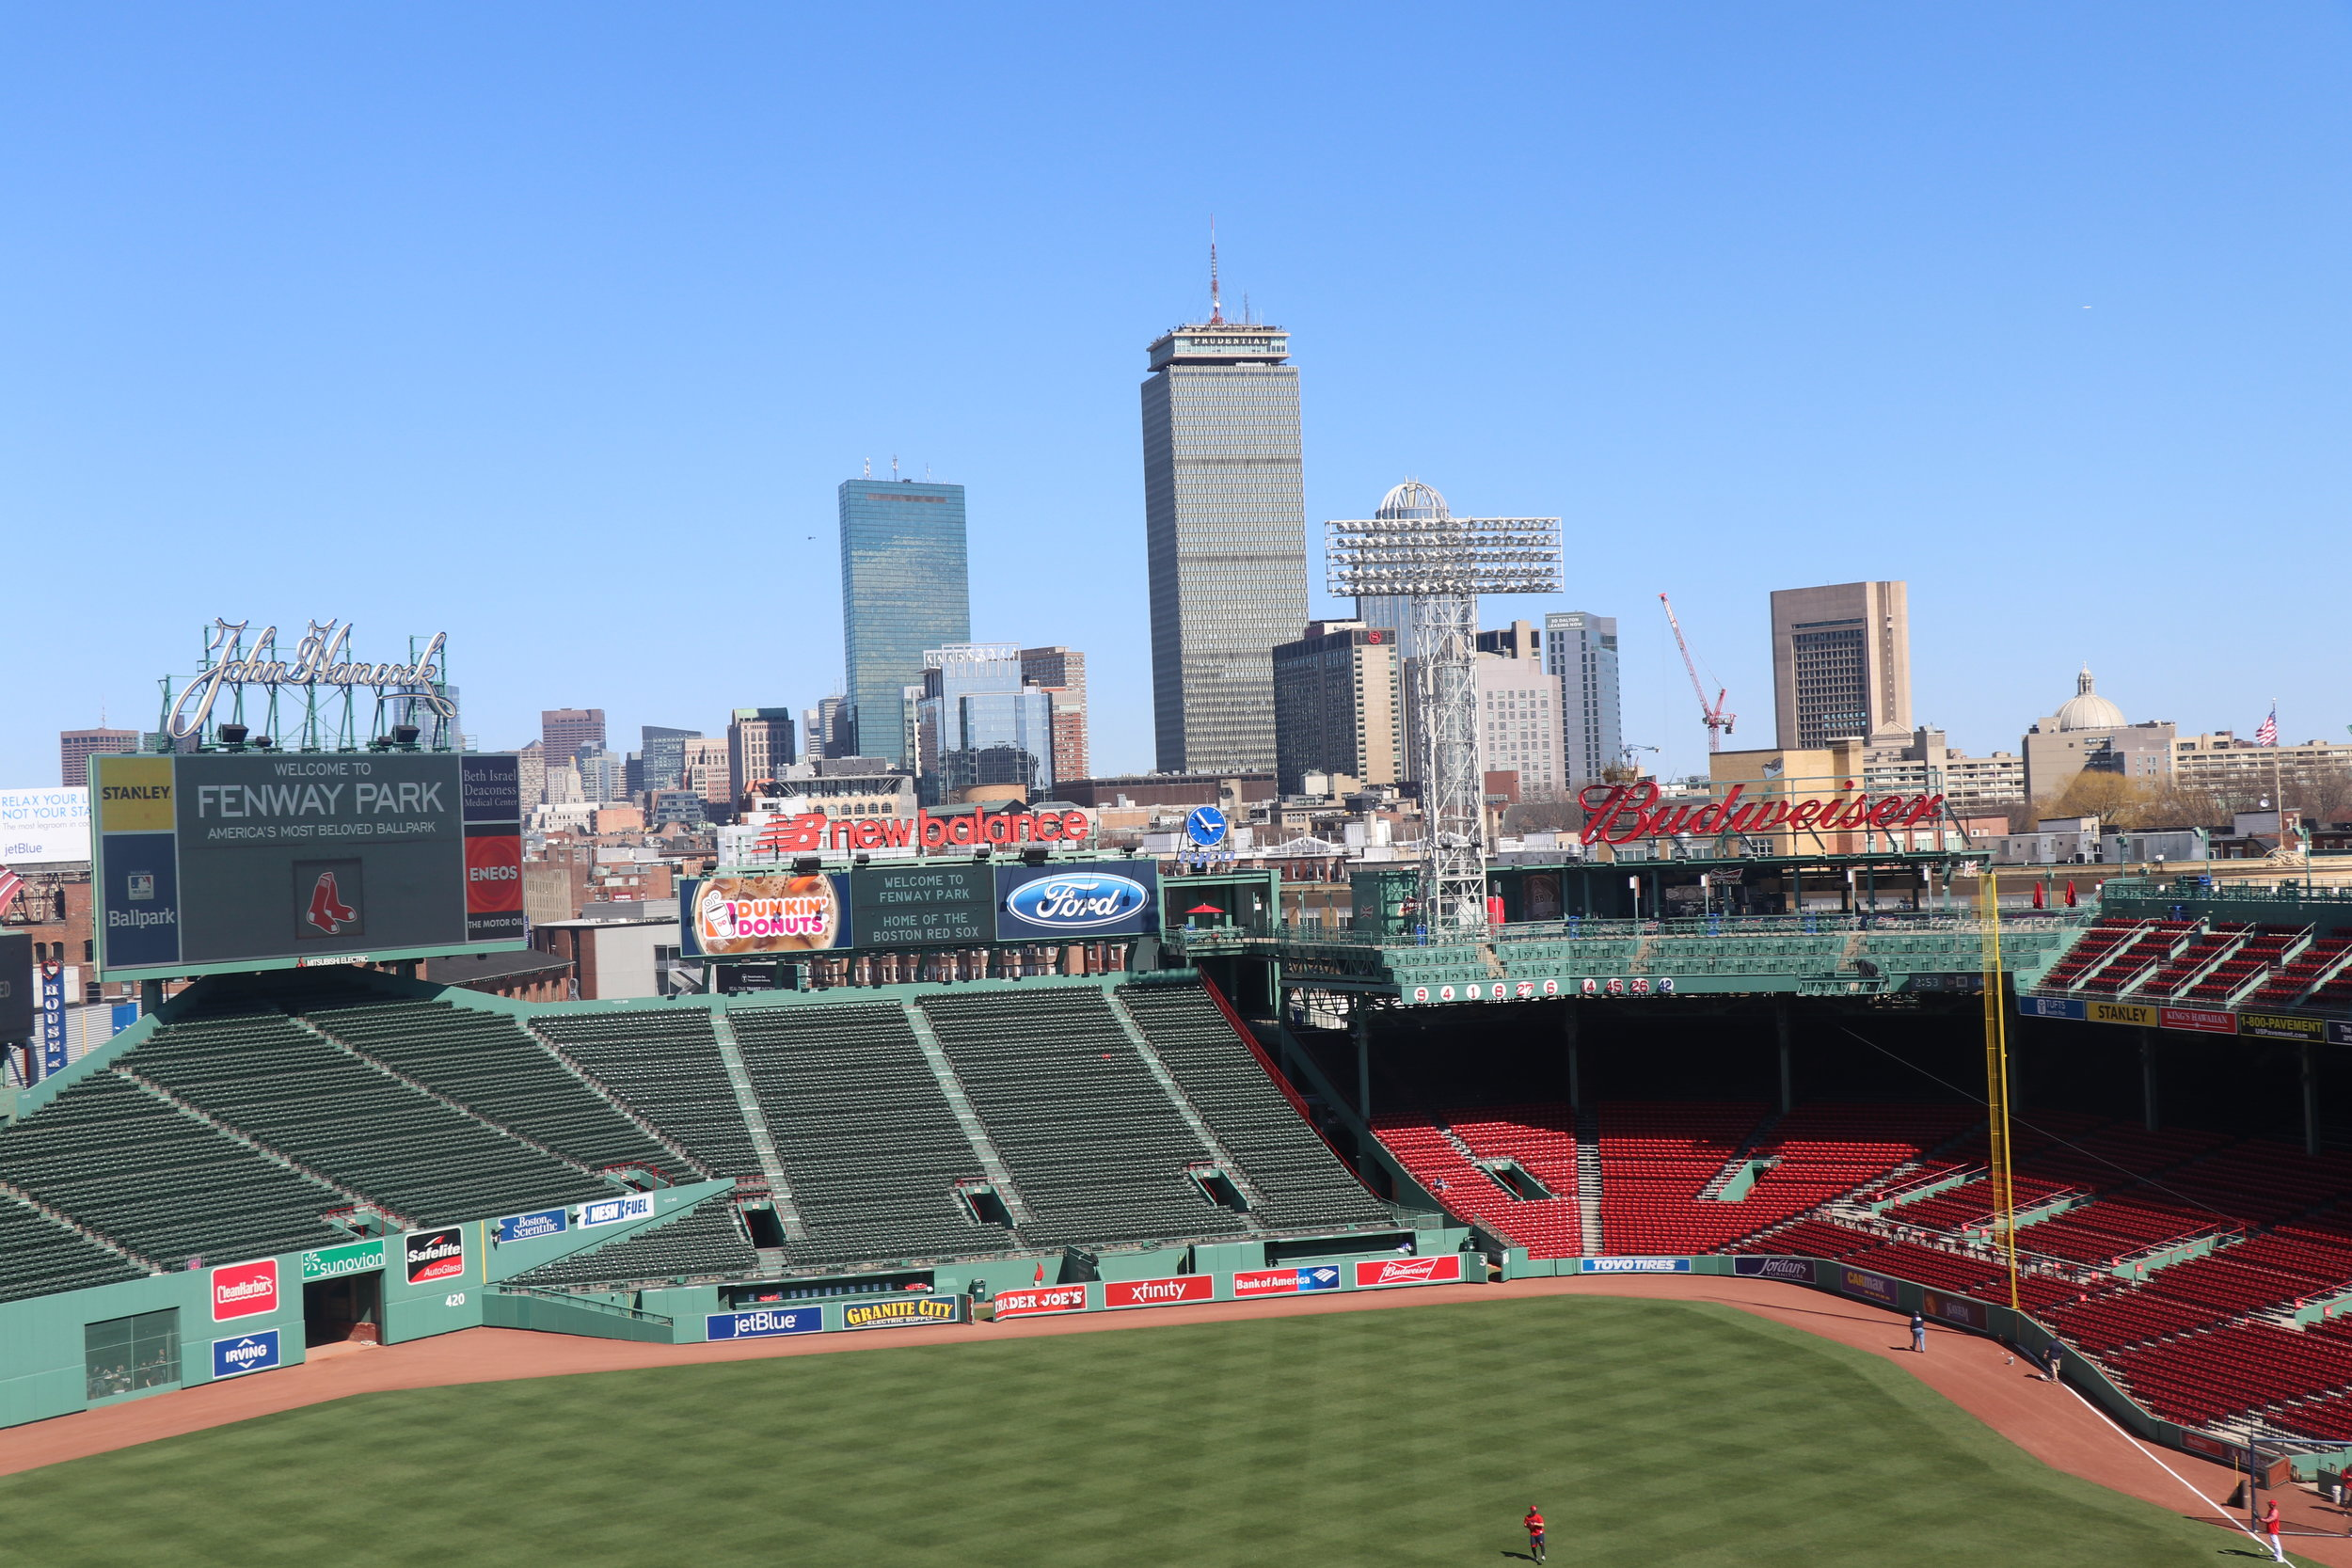 The city of Boston vie from the Green Monster - the tallest wall in all of baseball staduims - to sit up here you have to enter a raflie - could take years to get a seat